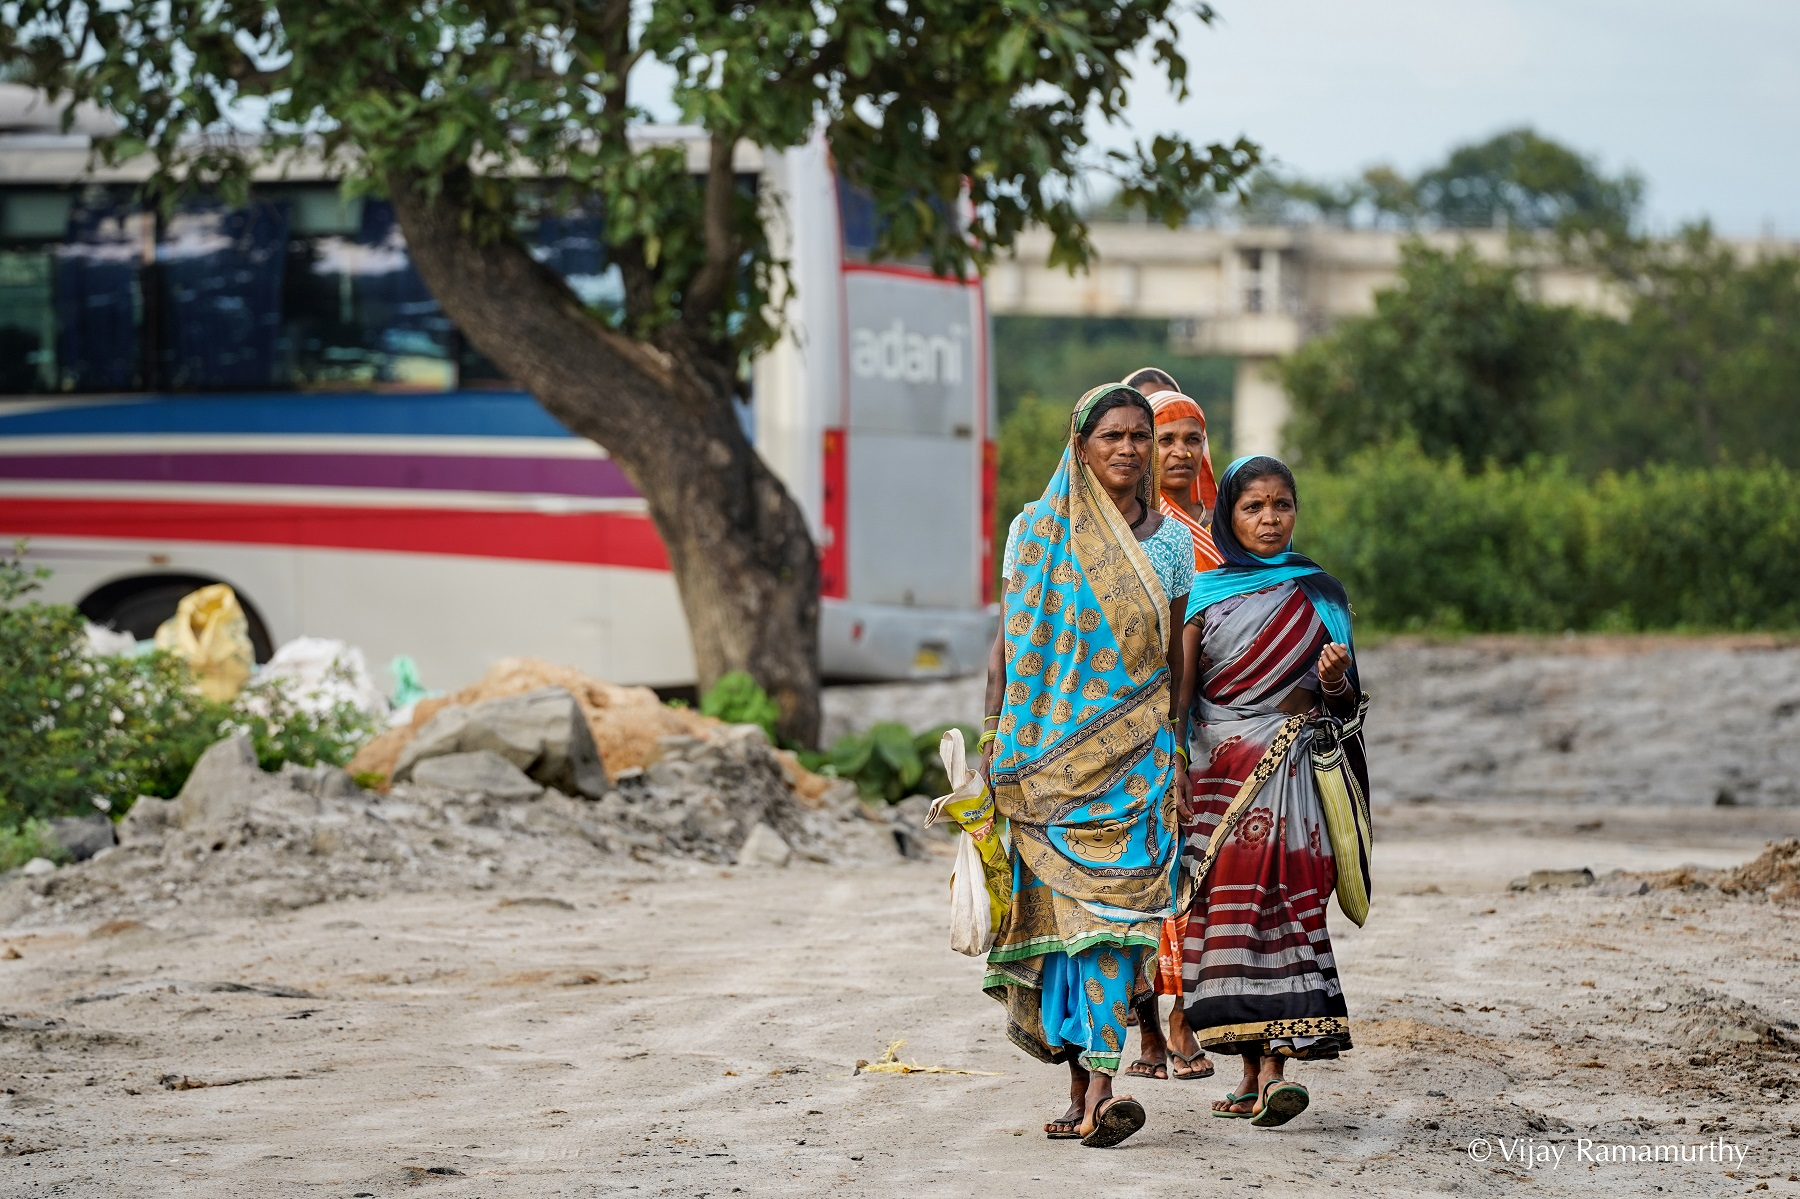 Adivasi women walk along what used to be a forest path, with an Adani coal workers bus in the background. Photo V. Ramamurthy